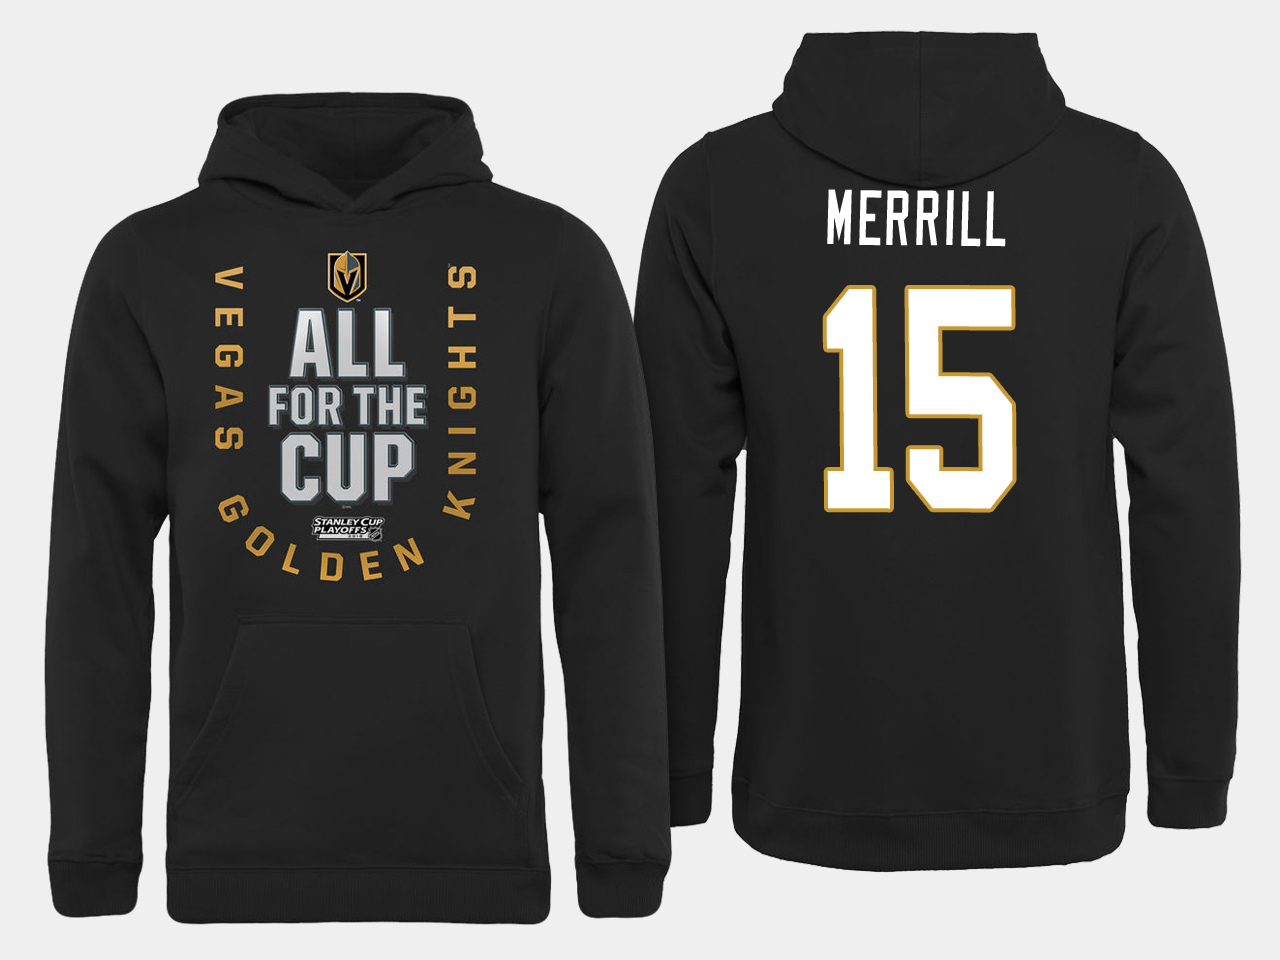 Men NHL Vegas Golden Knights 15 Merrill All for the Cup hoodie